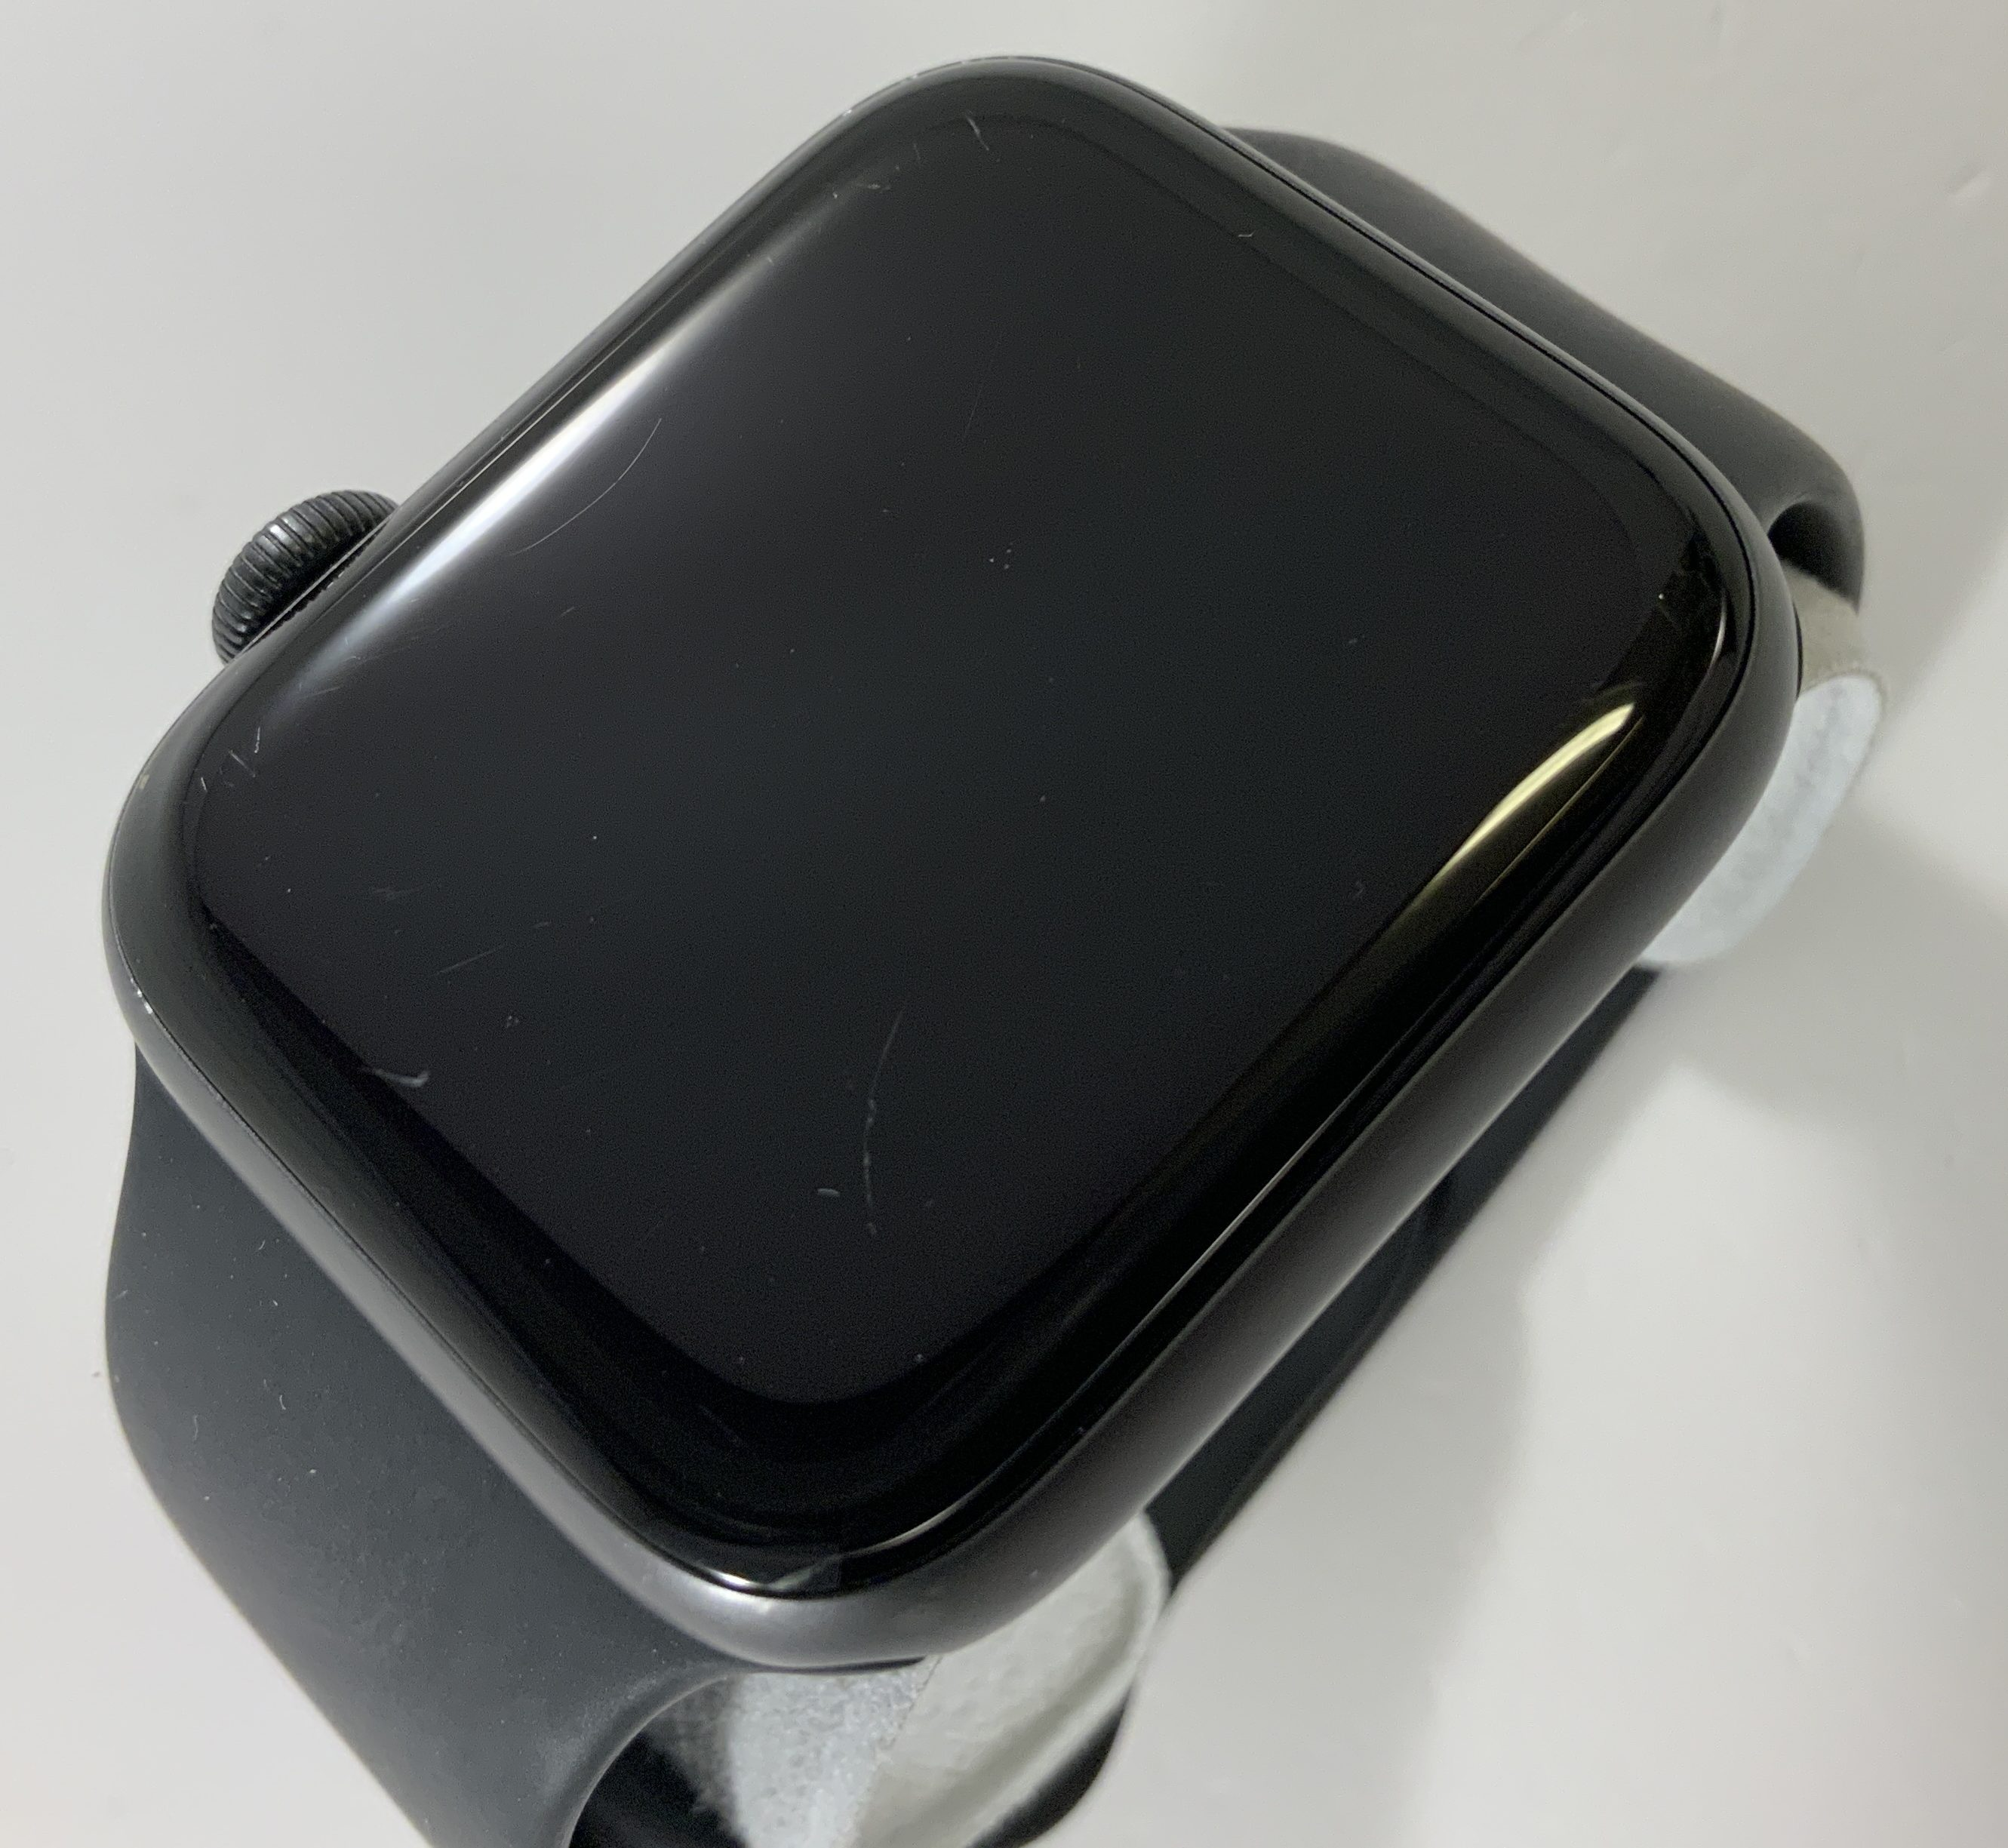 Watch Series 4 Aluminum (44mm), Space Gray, Black Sport Band, Afbeelding 3